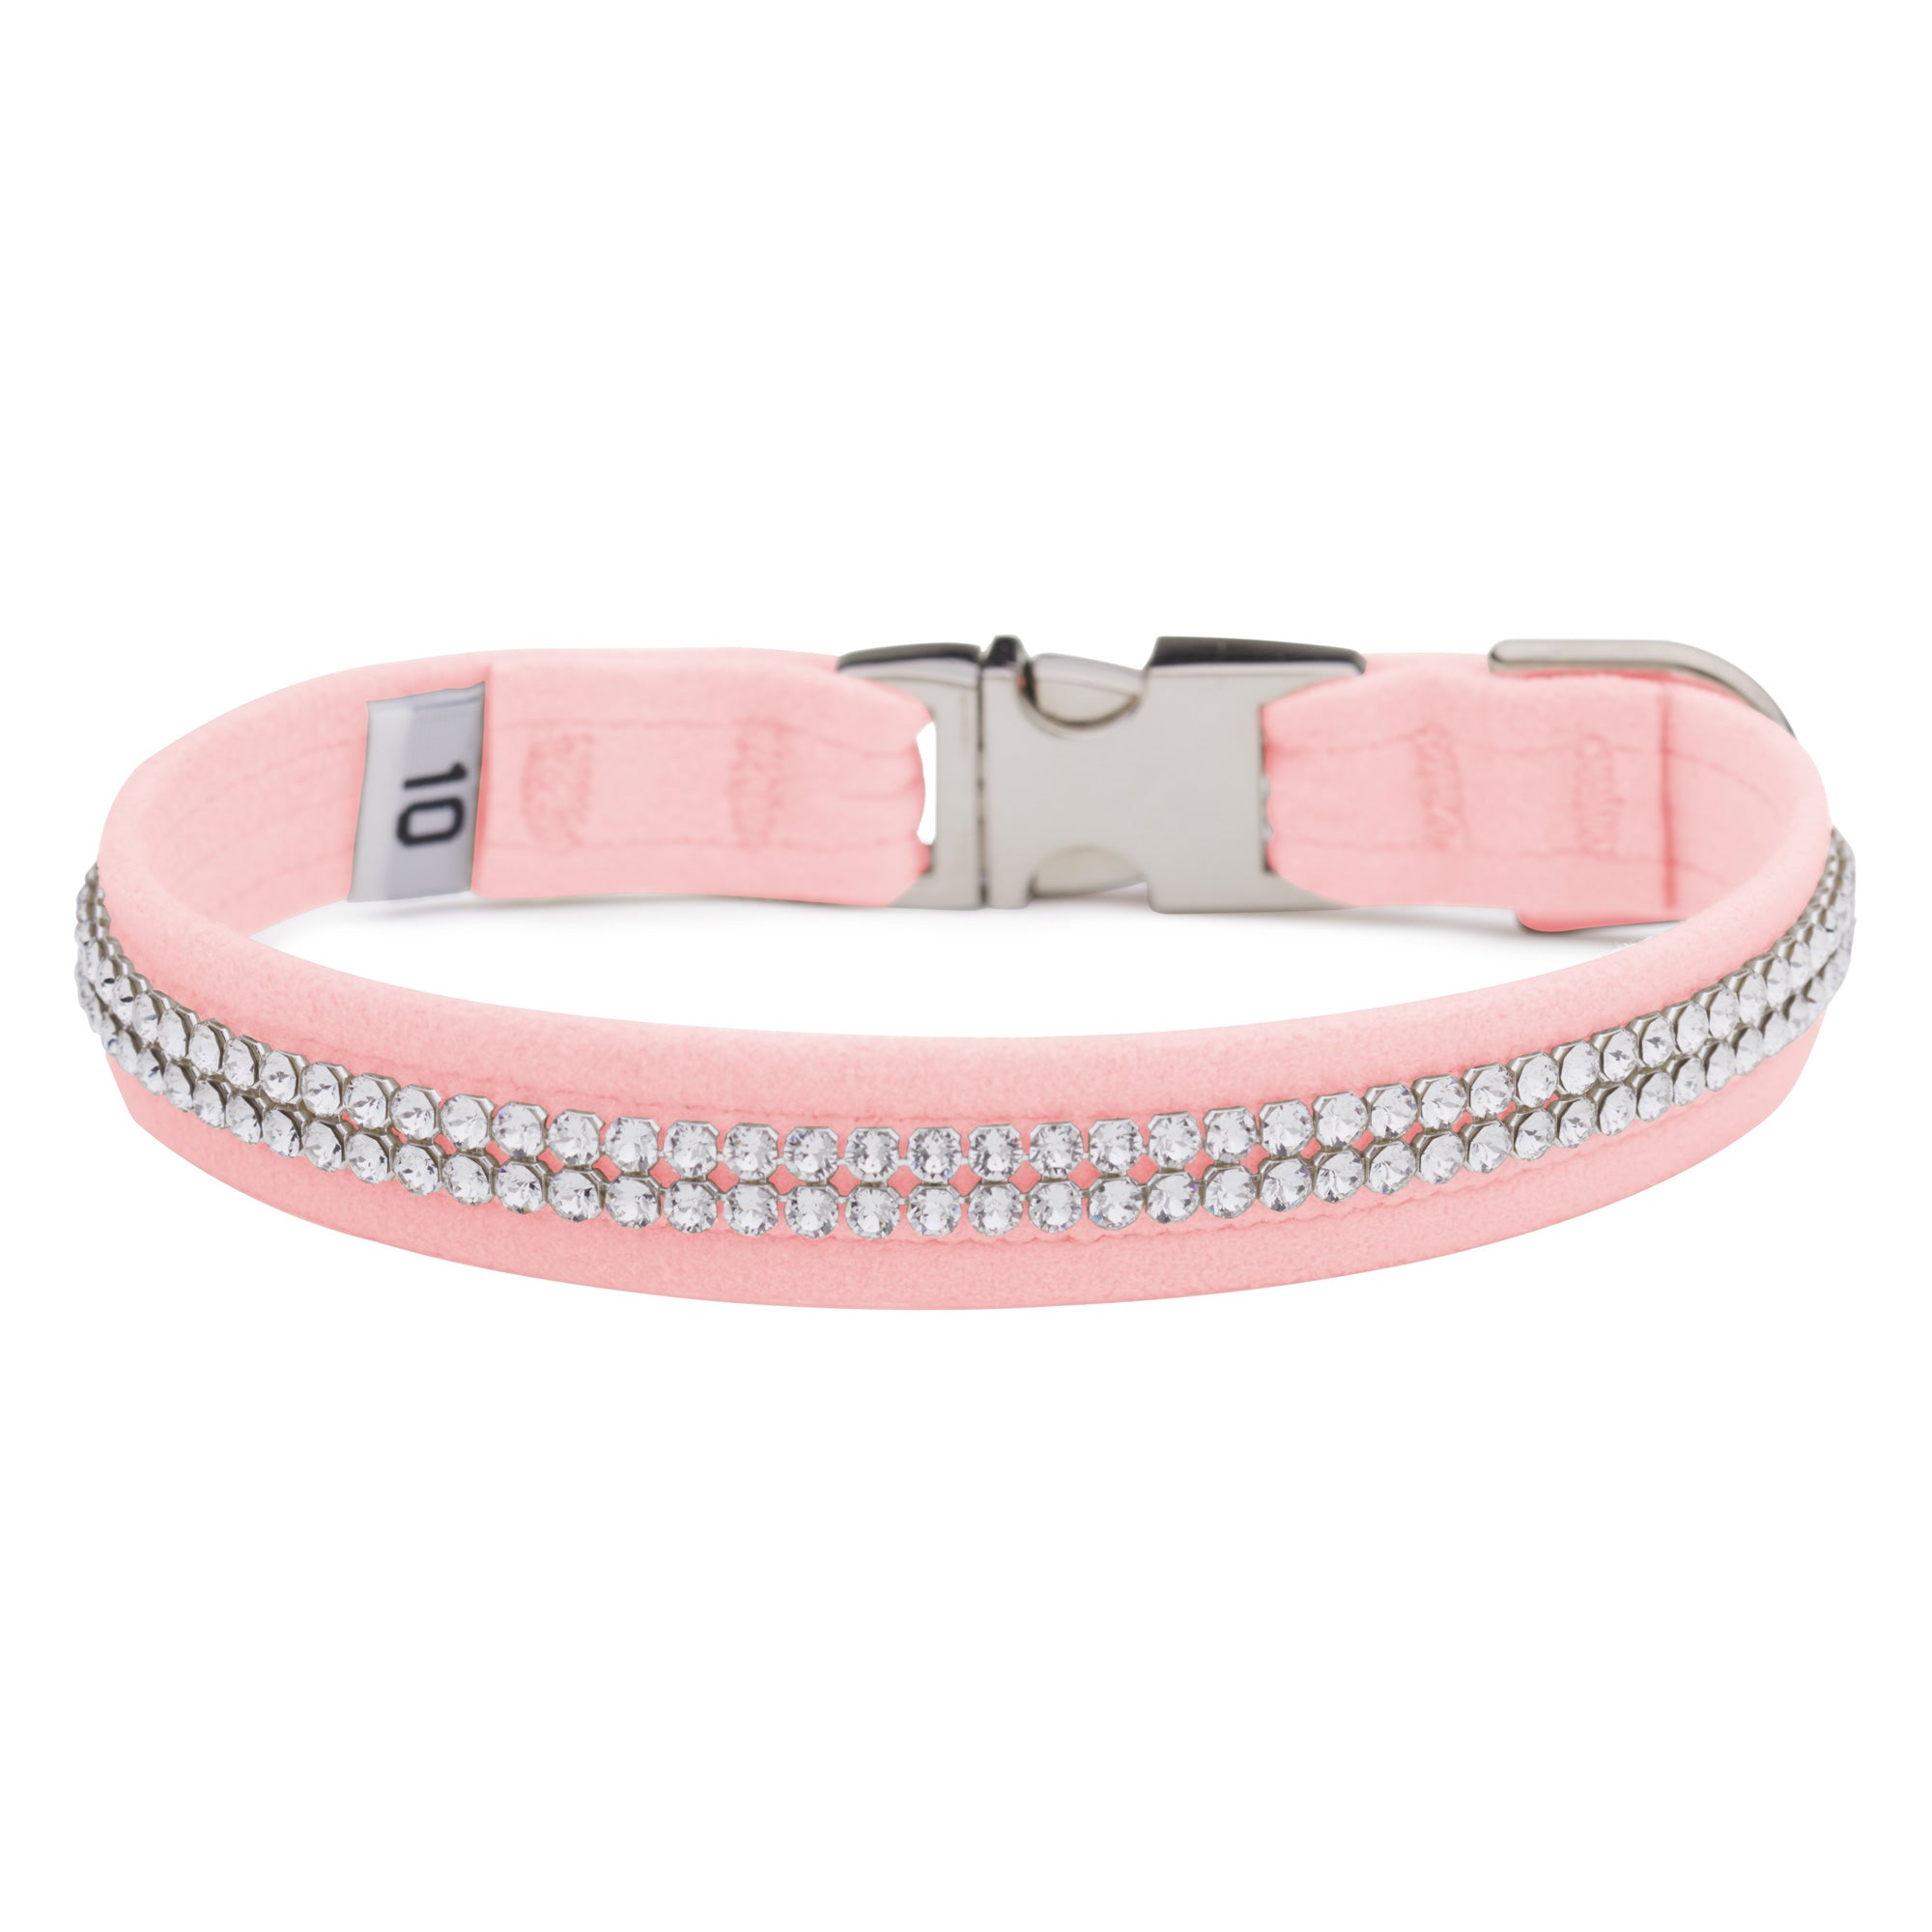 Puppy Pink 2 Row Giltmore Perfect Fit Collar